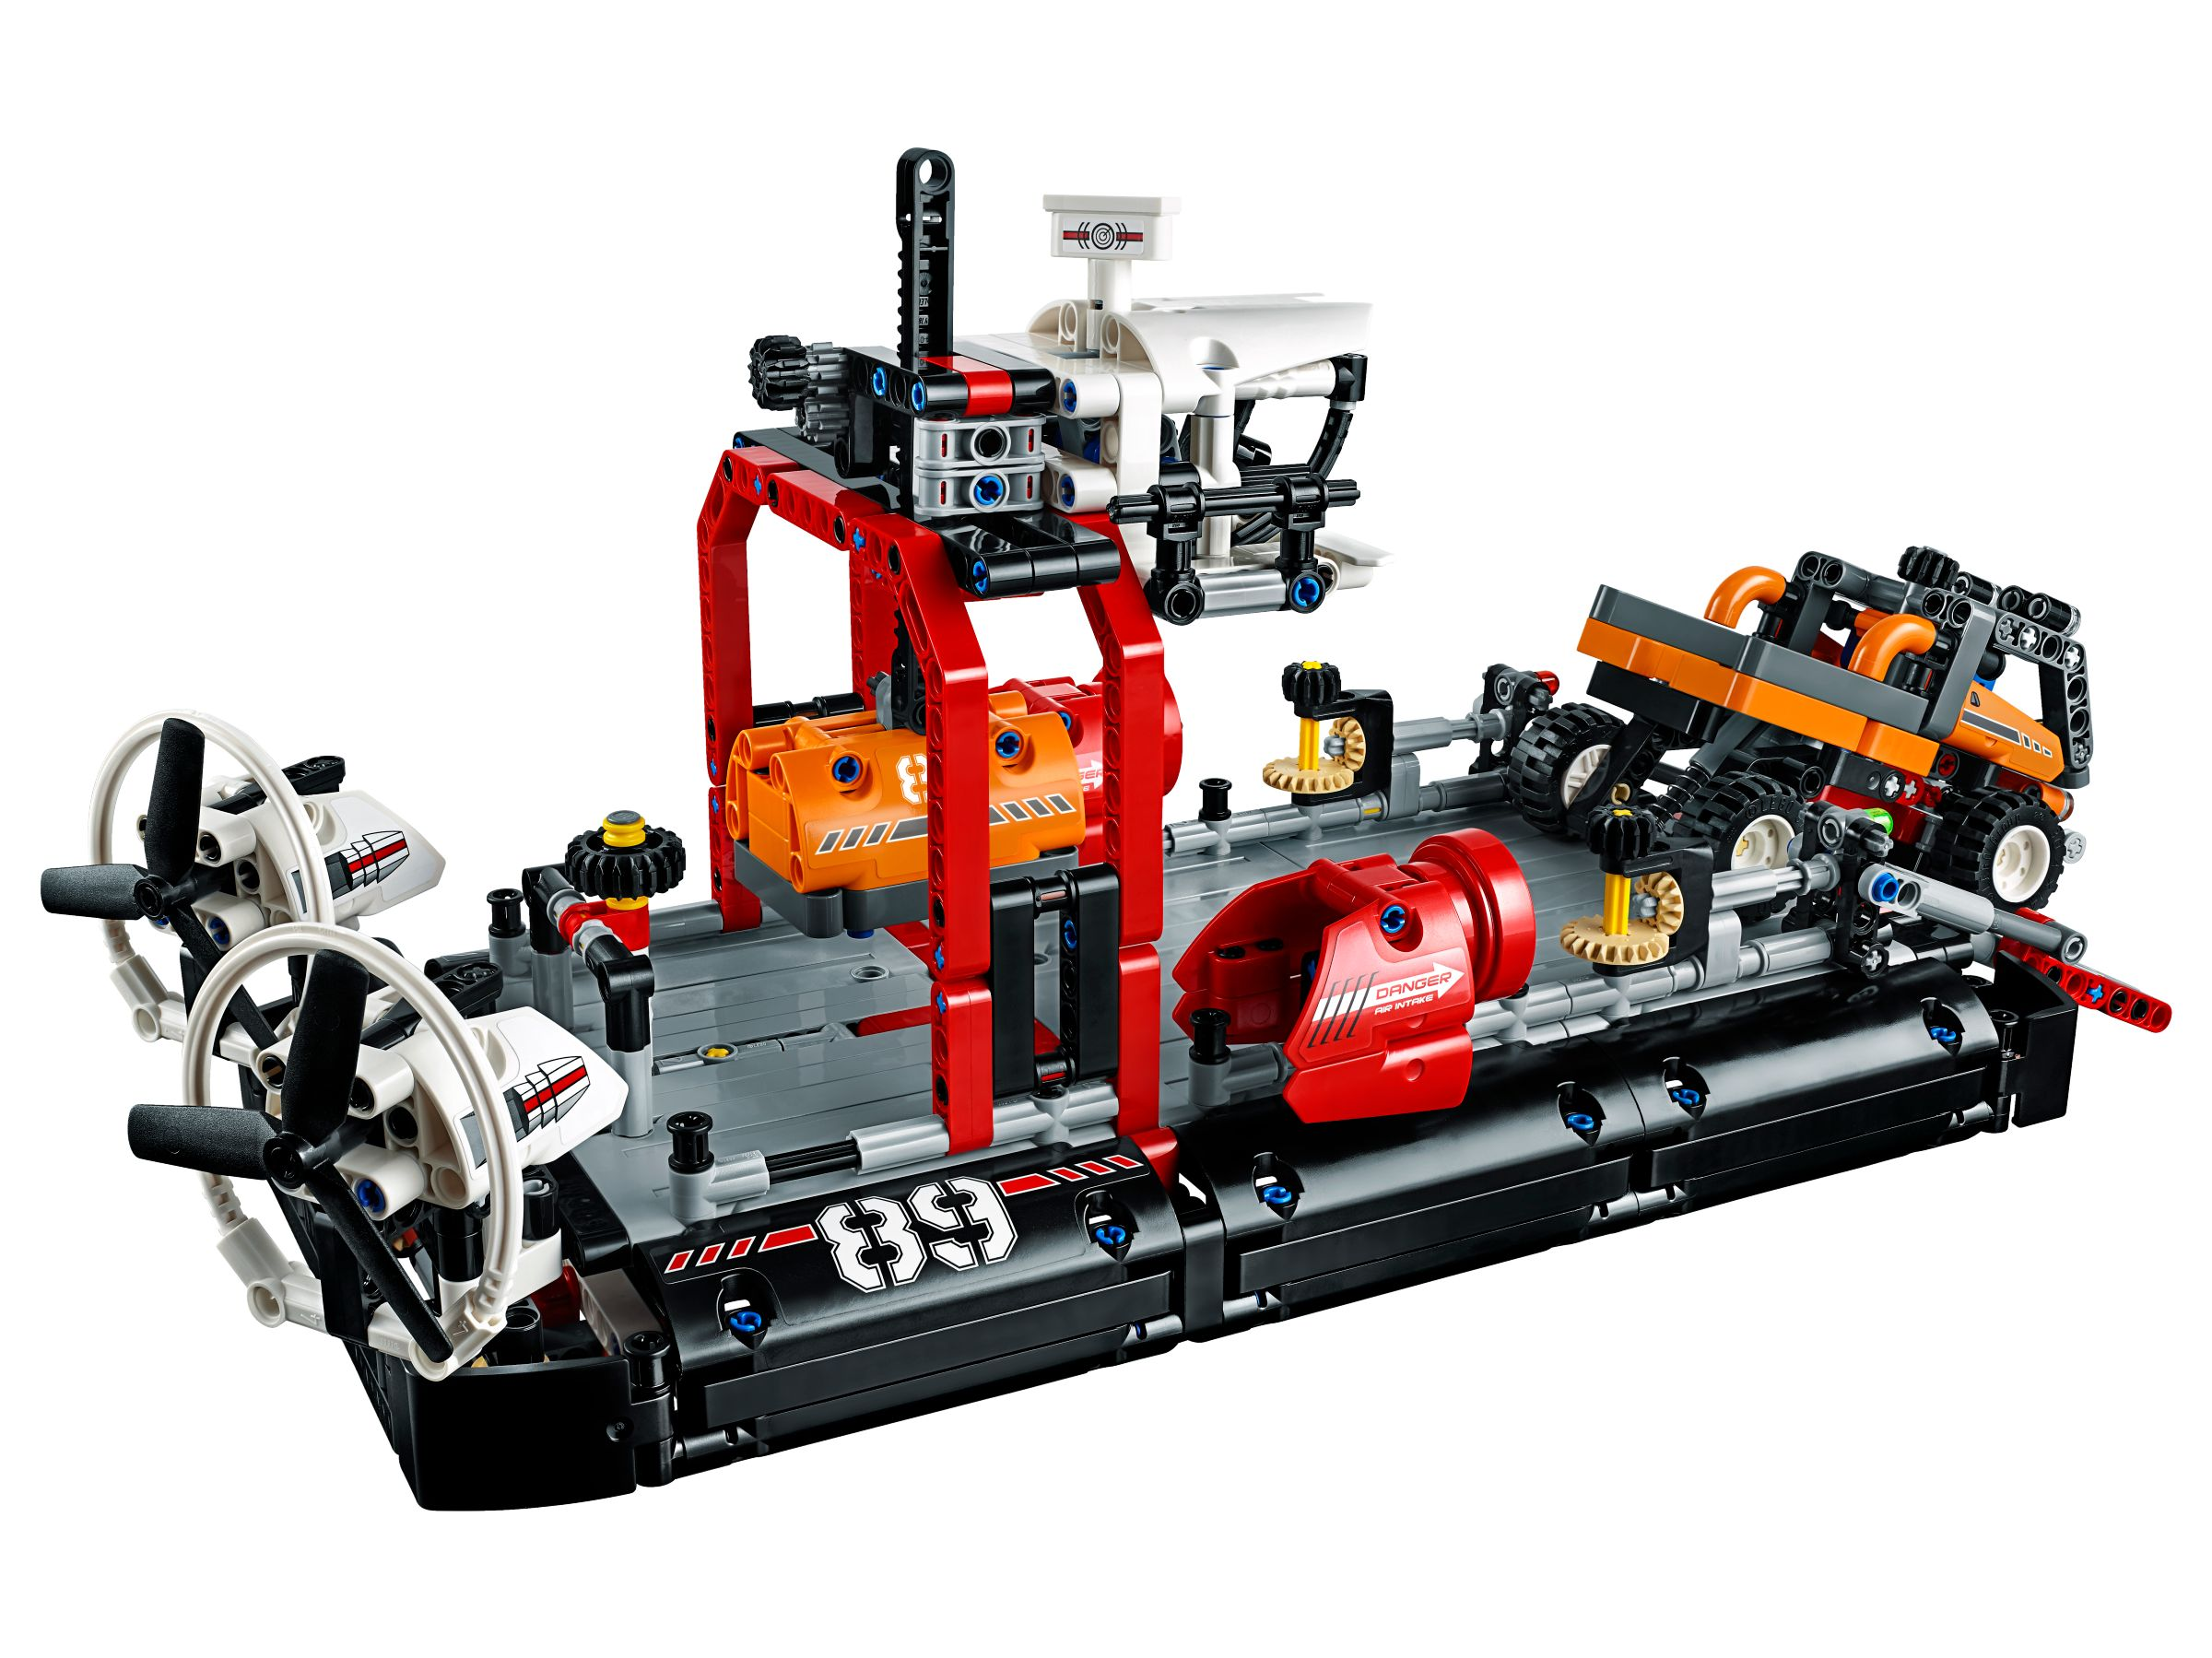 28 ab 50 64 luftkissenboot 42076 lego technic 2018 im preisvergleich hovercraft. Black Bedroom Furniture Sets. Home Design Ideas